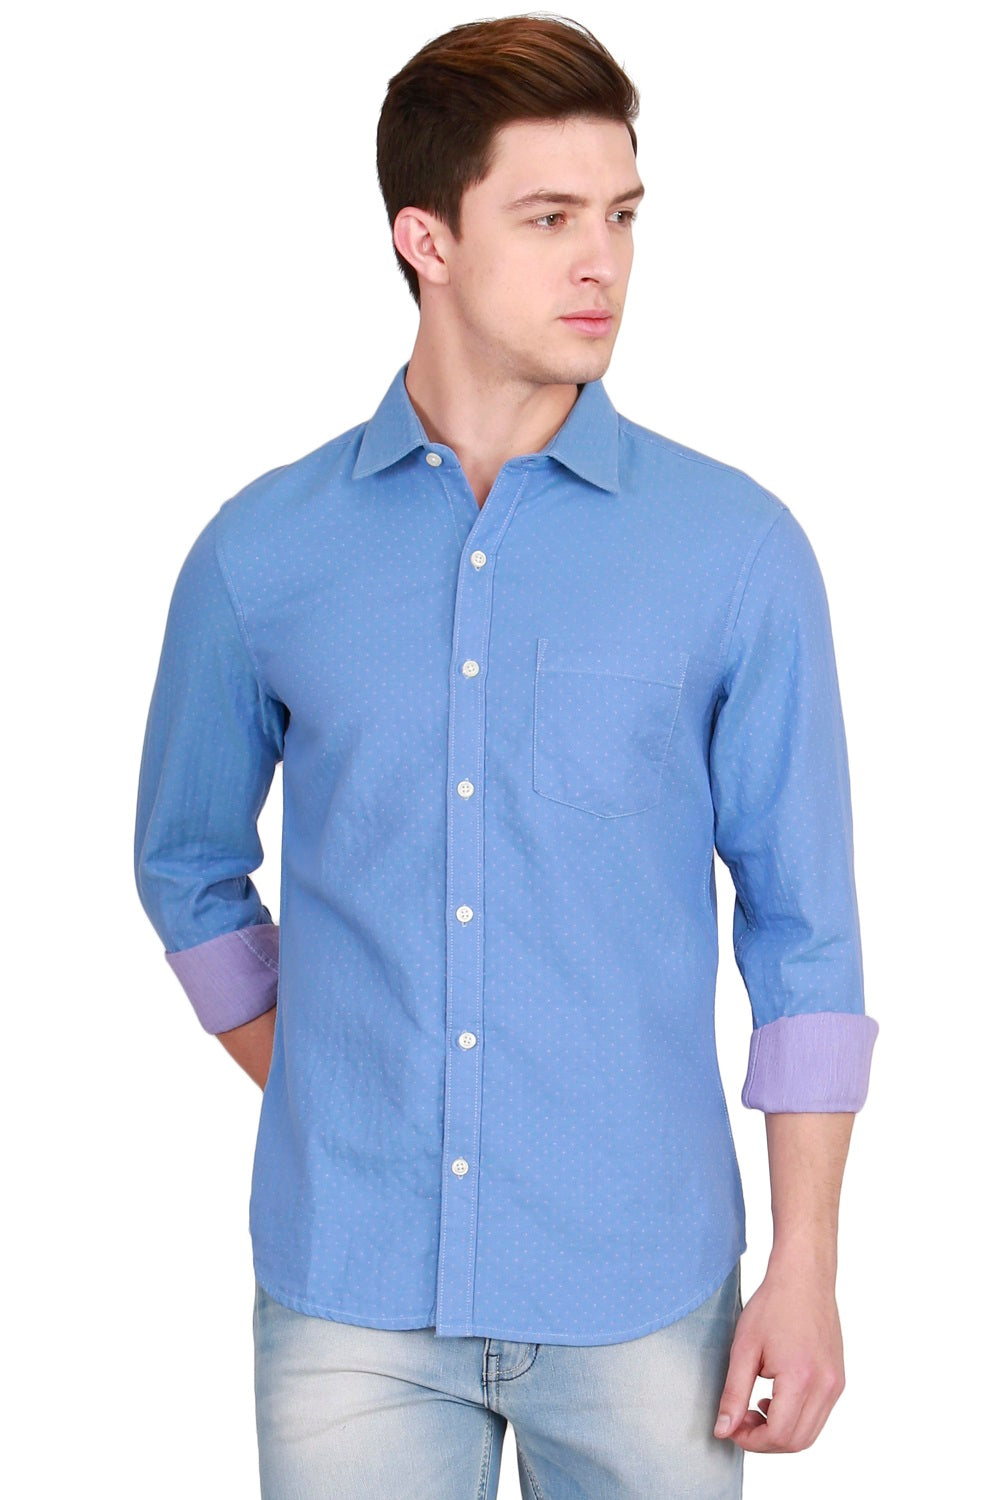 IMYOUNG Blue Solid Slim Fit Casual Shirt